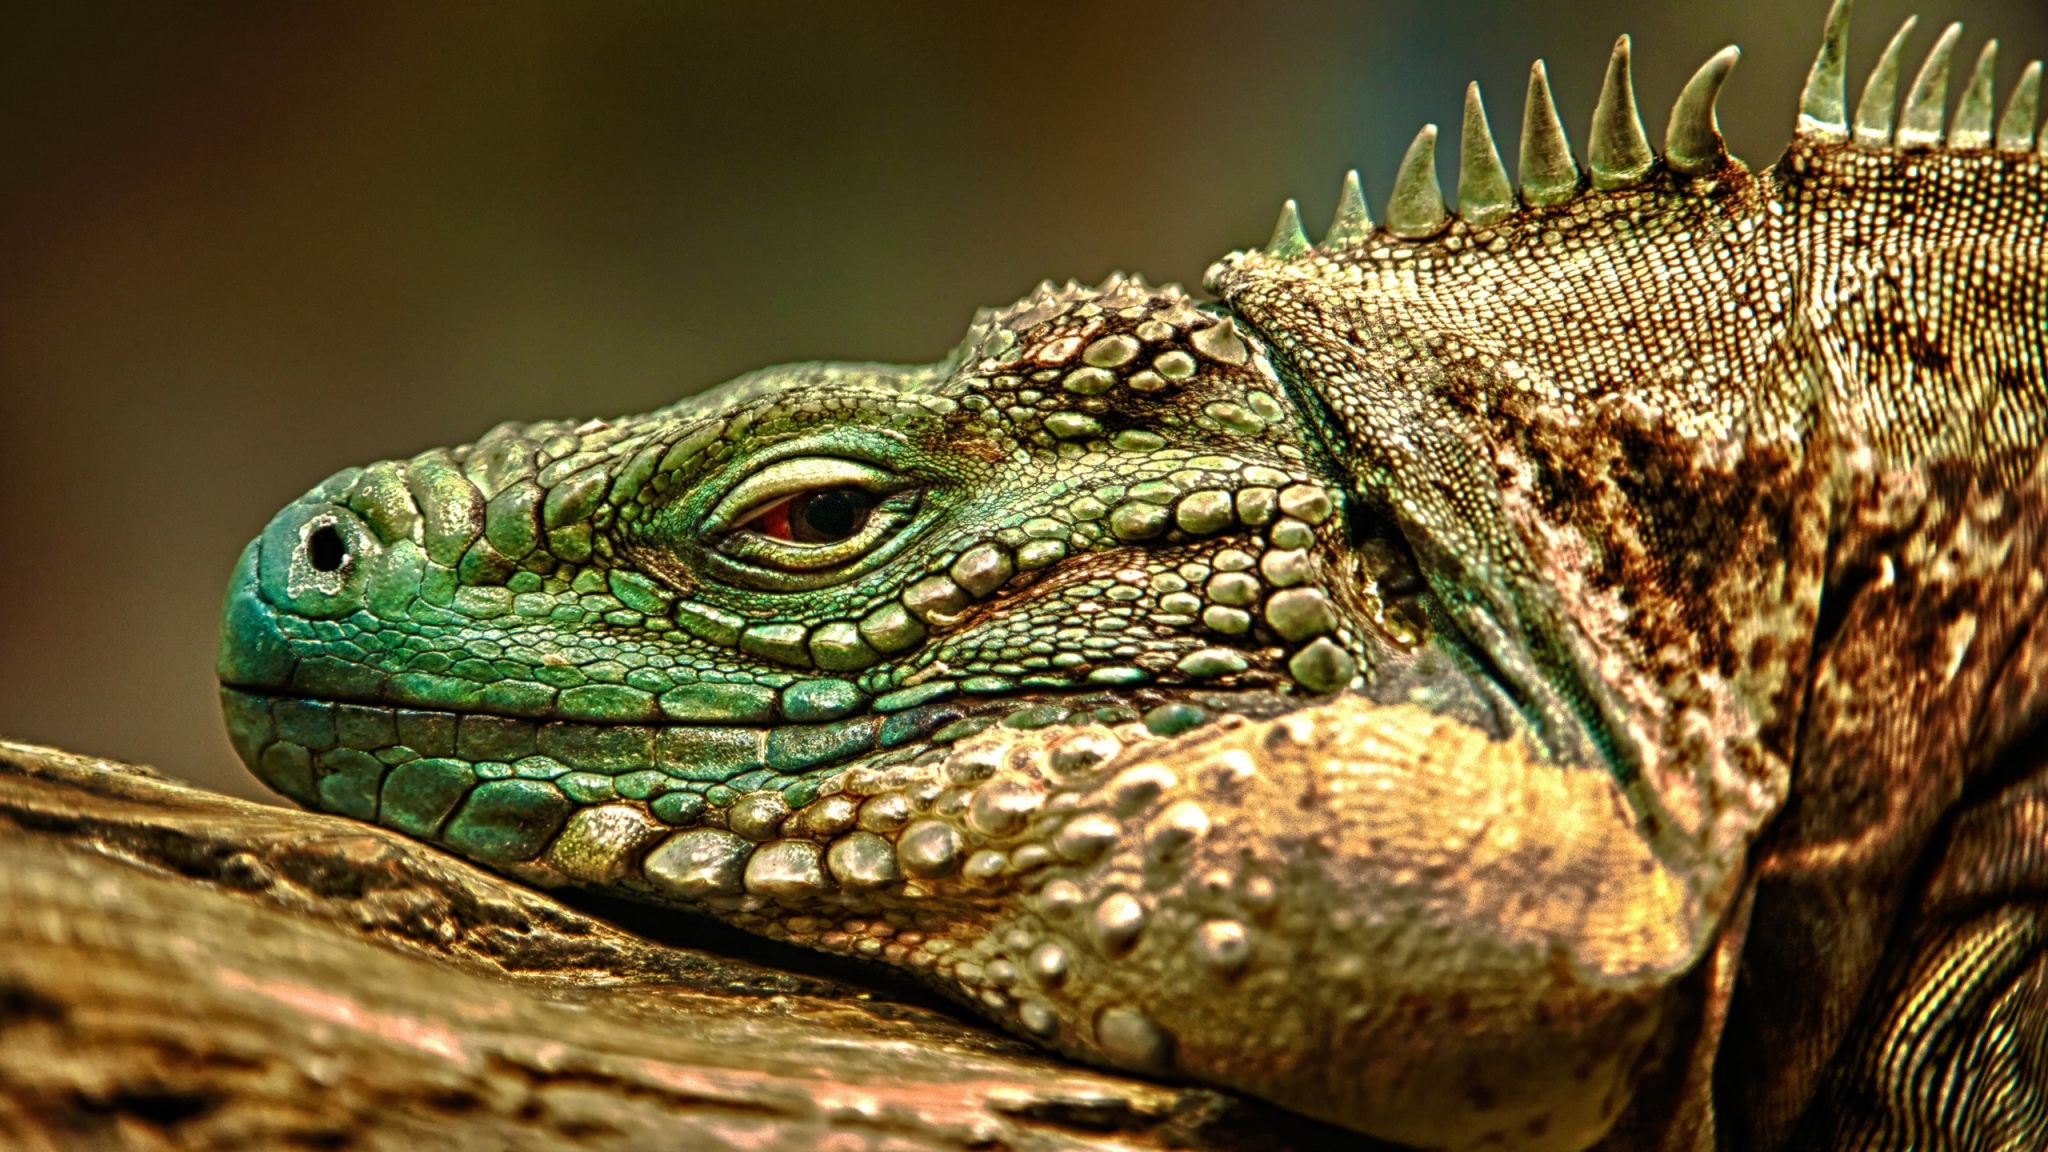 22 reptile hd wallpapers - photo #47